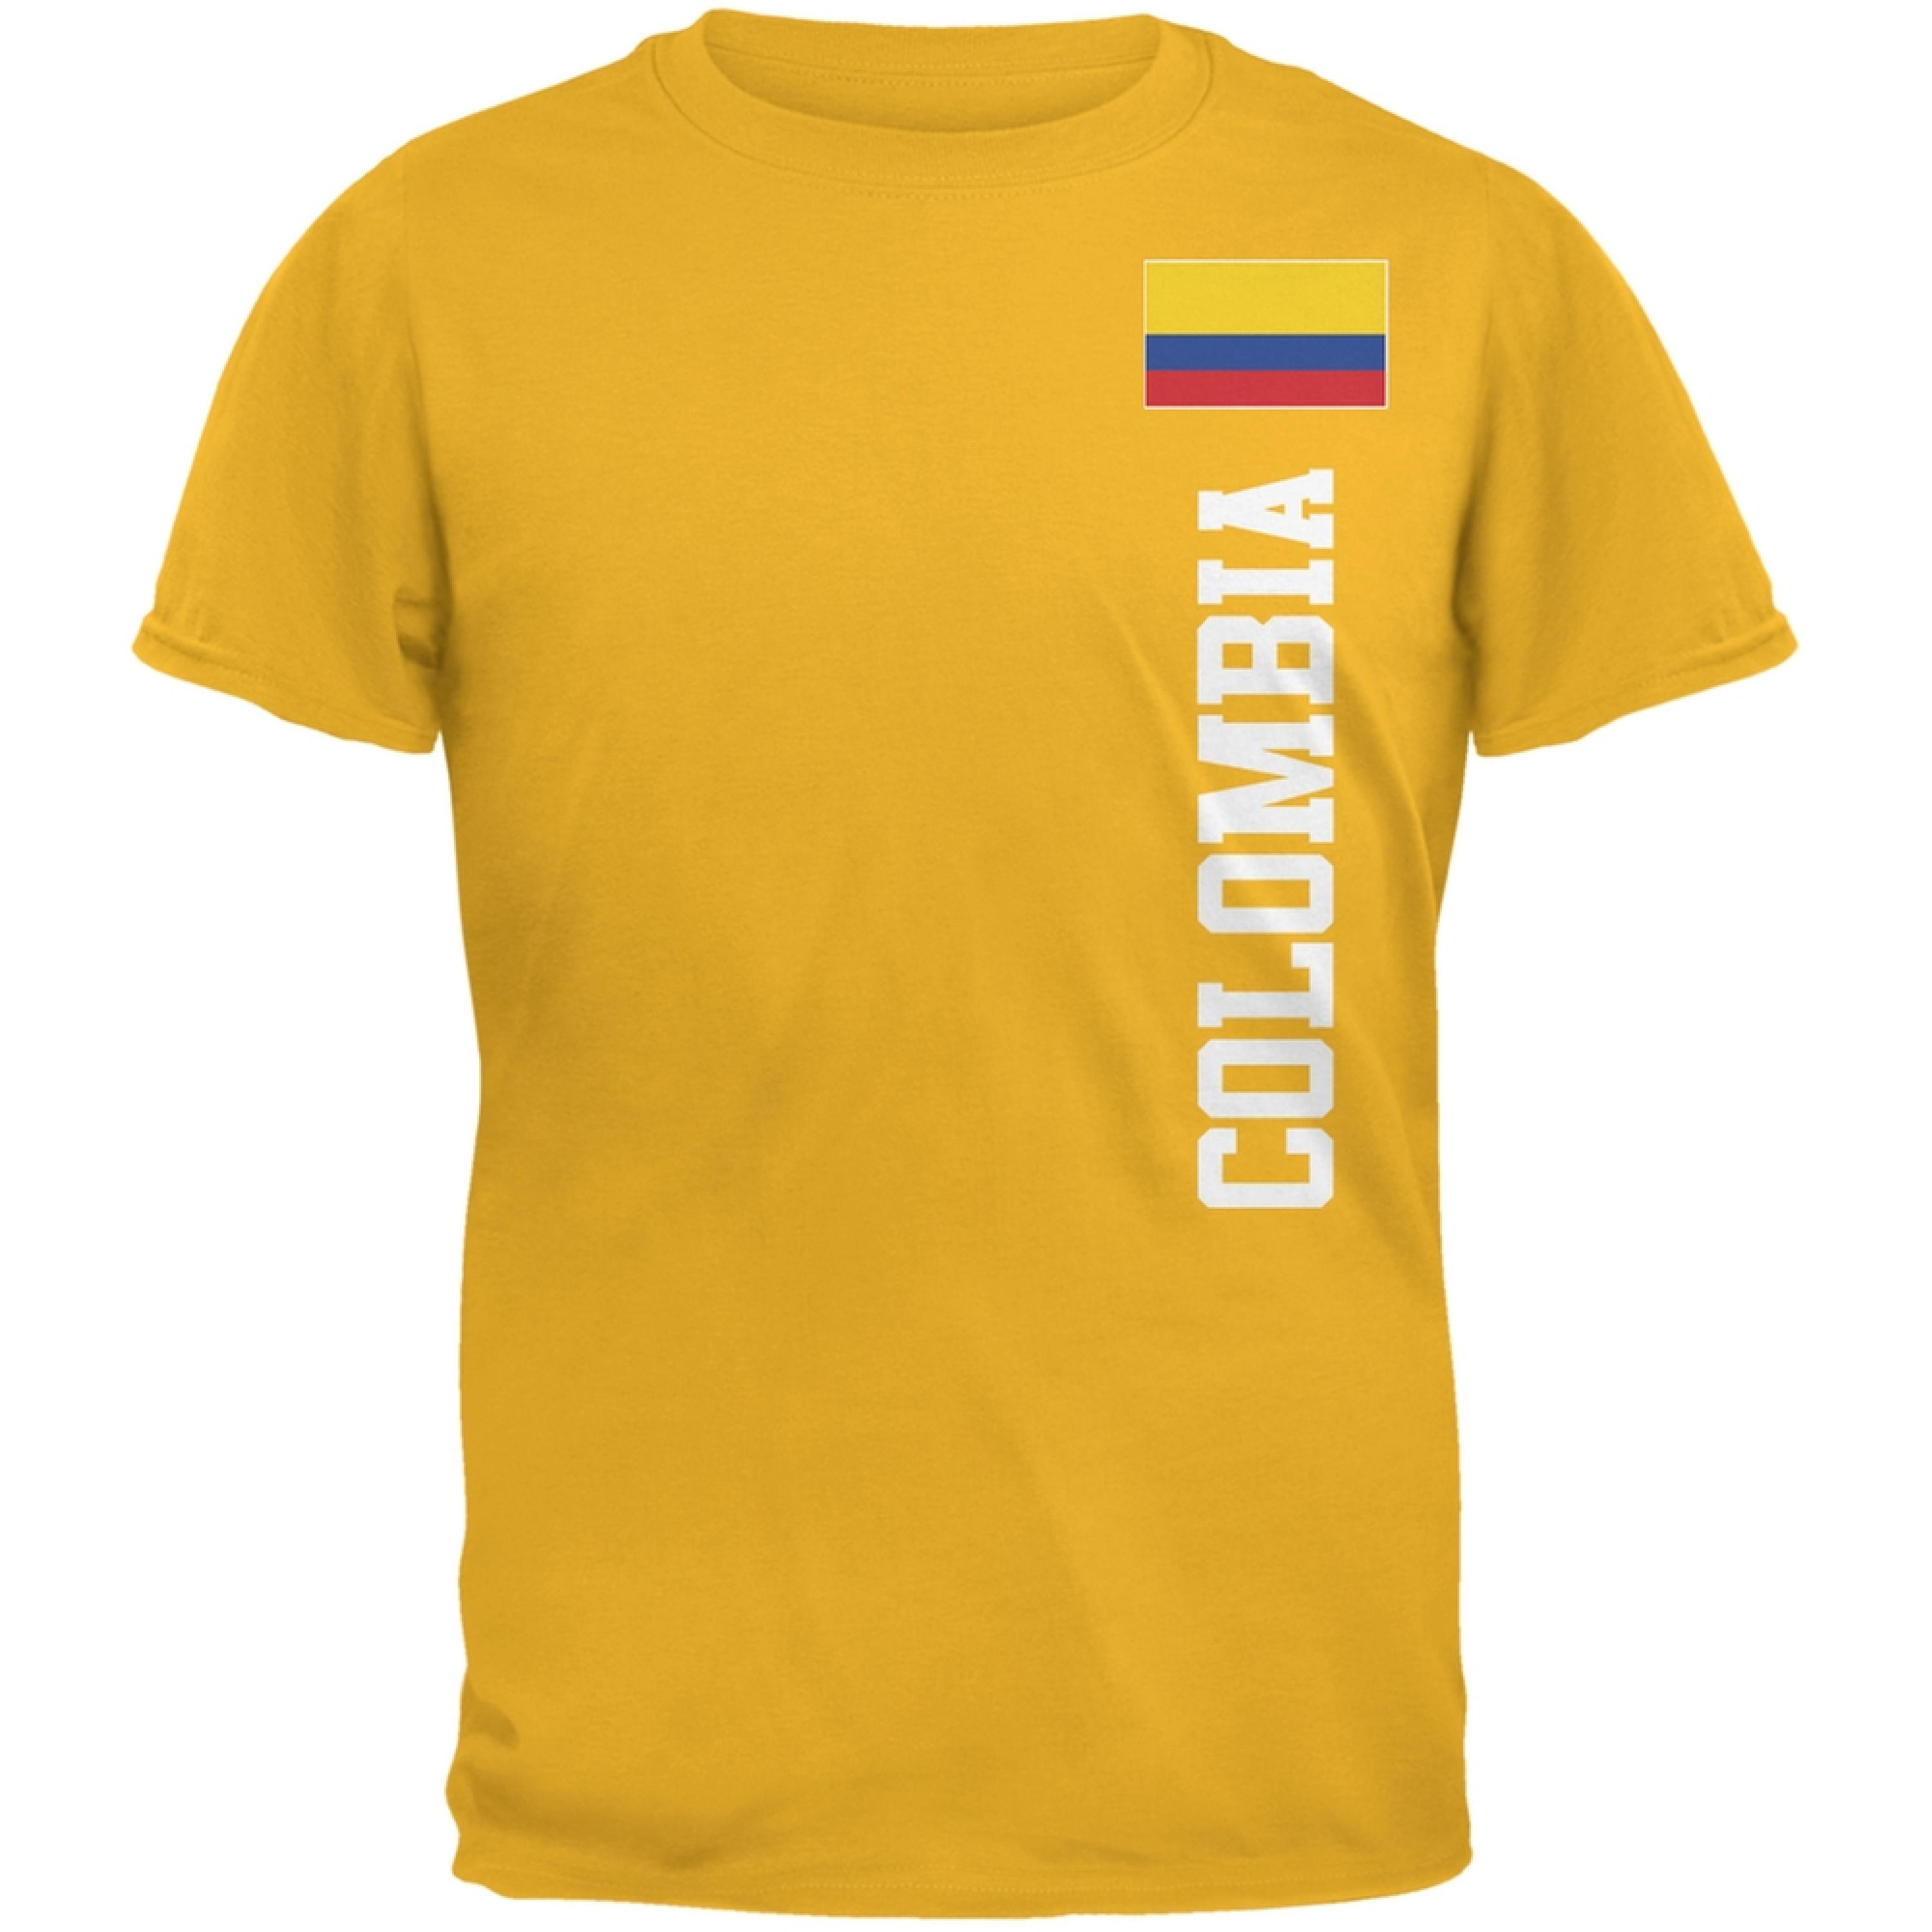 World Cup Colombia Yellow Adult T-Shirt